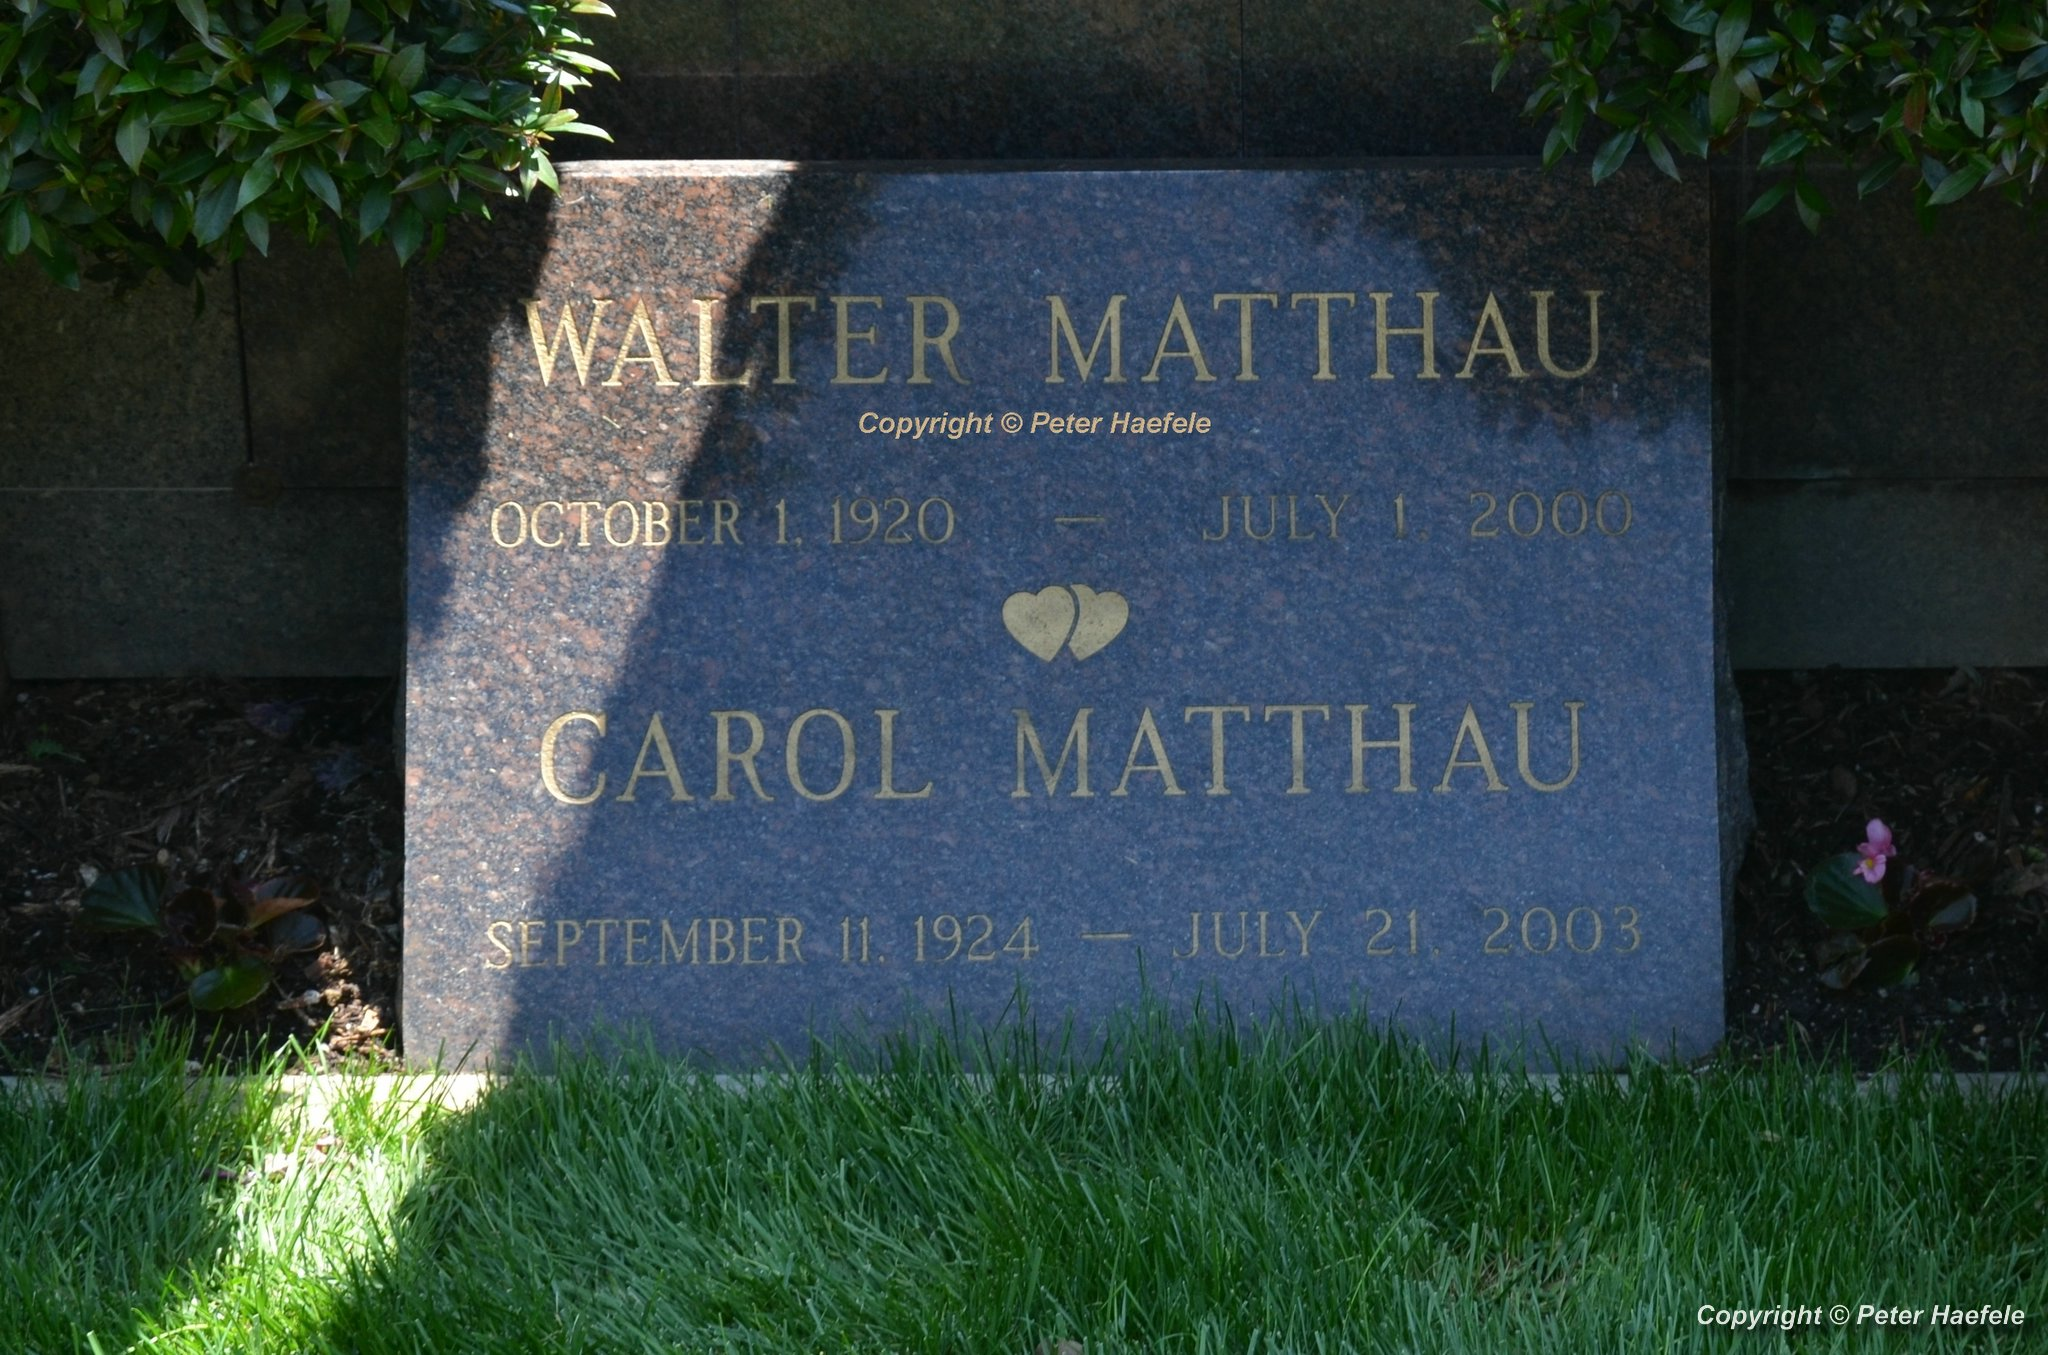 Roadtrip USA - Westwood Village Memorial Park Cemetery - Grave of Walter Matthau